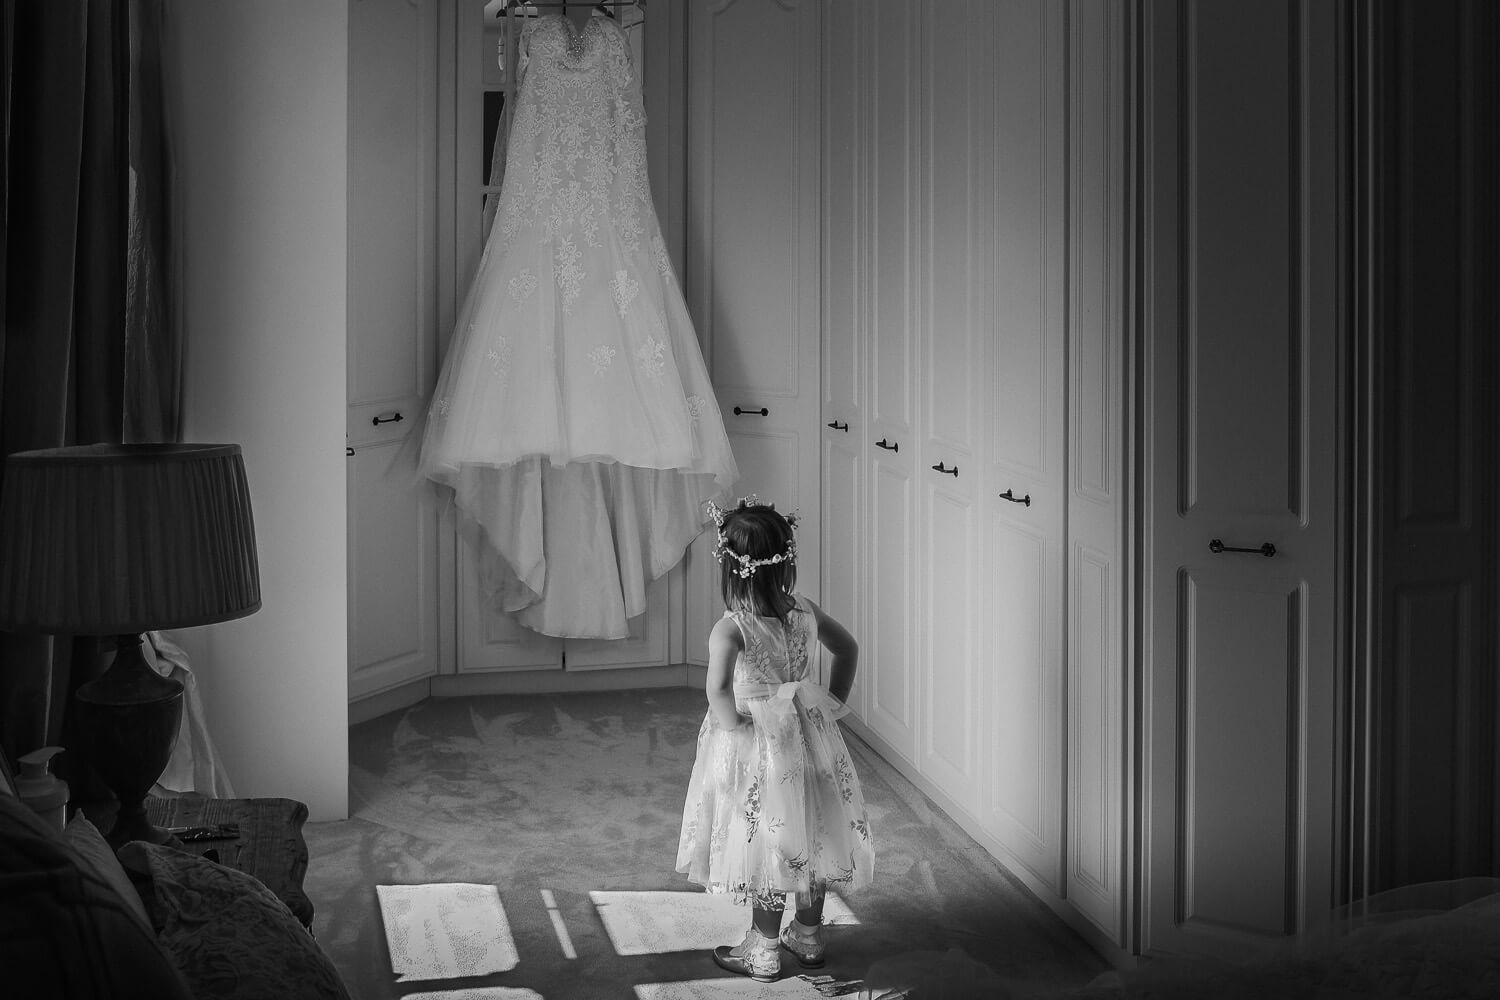 Little girl looking at Morilee wedding gown